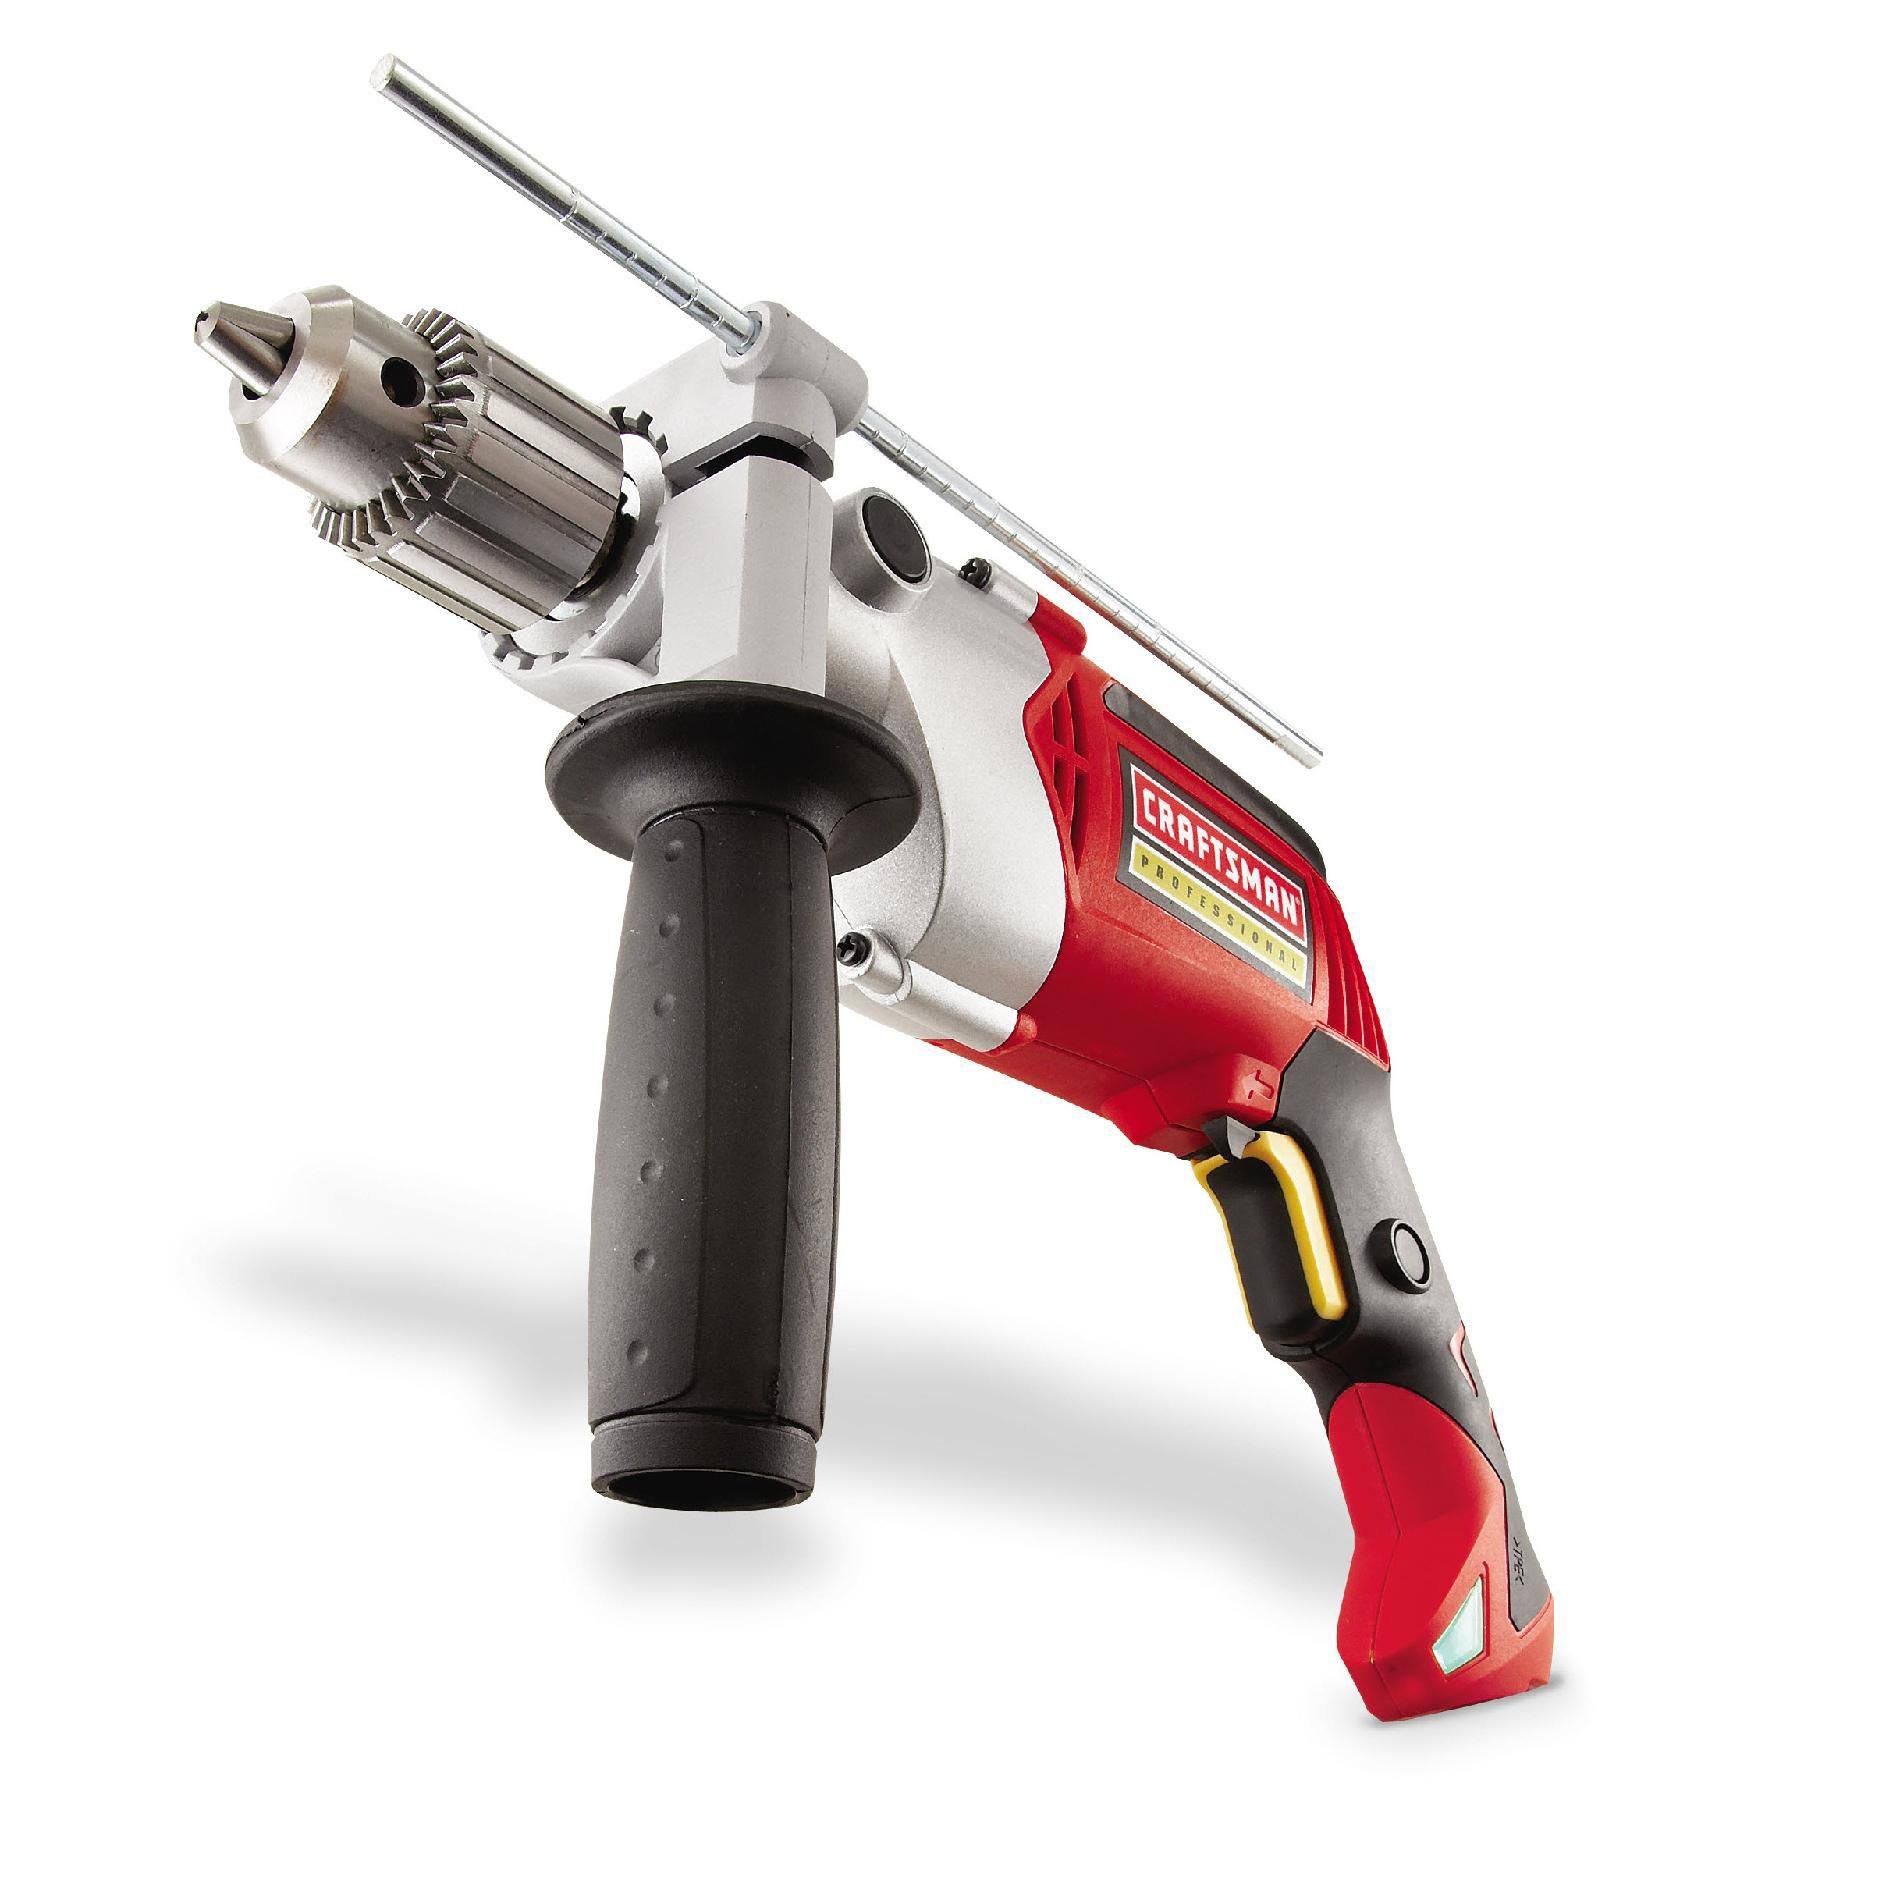 "Craftsman Professional 28129 8.0 amp Corded 1/2"" Hammer Drill"